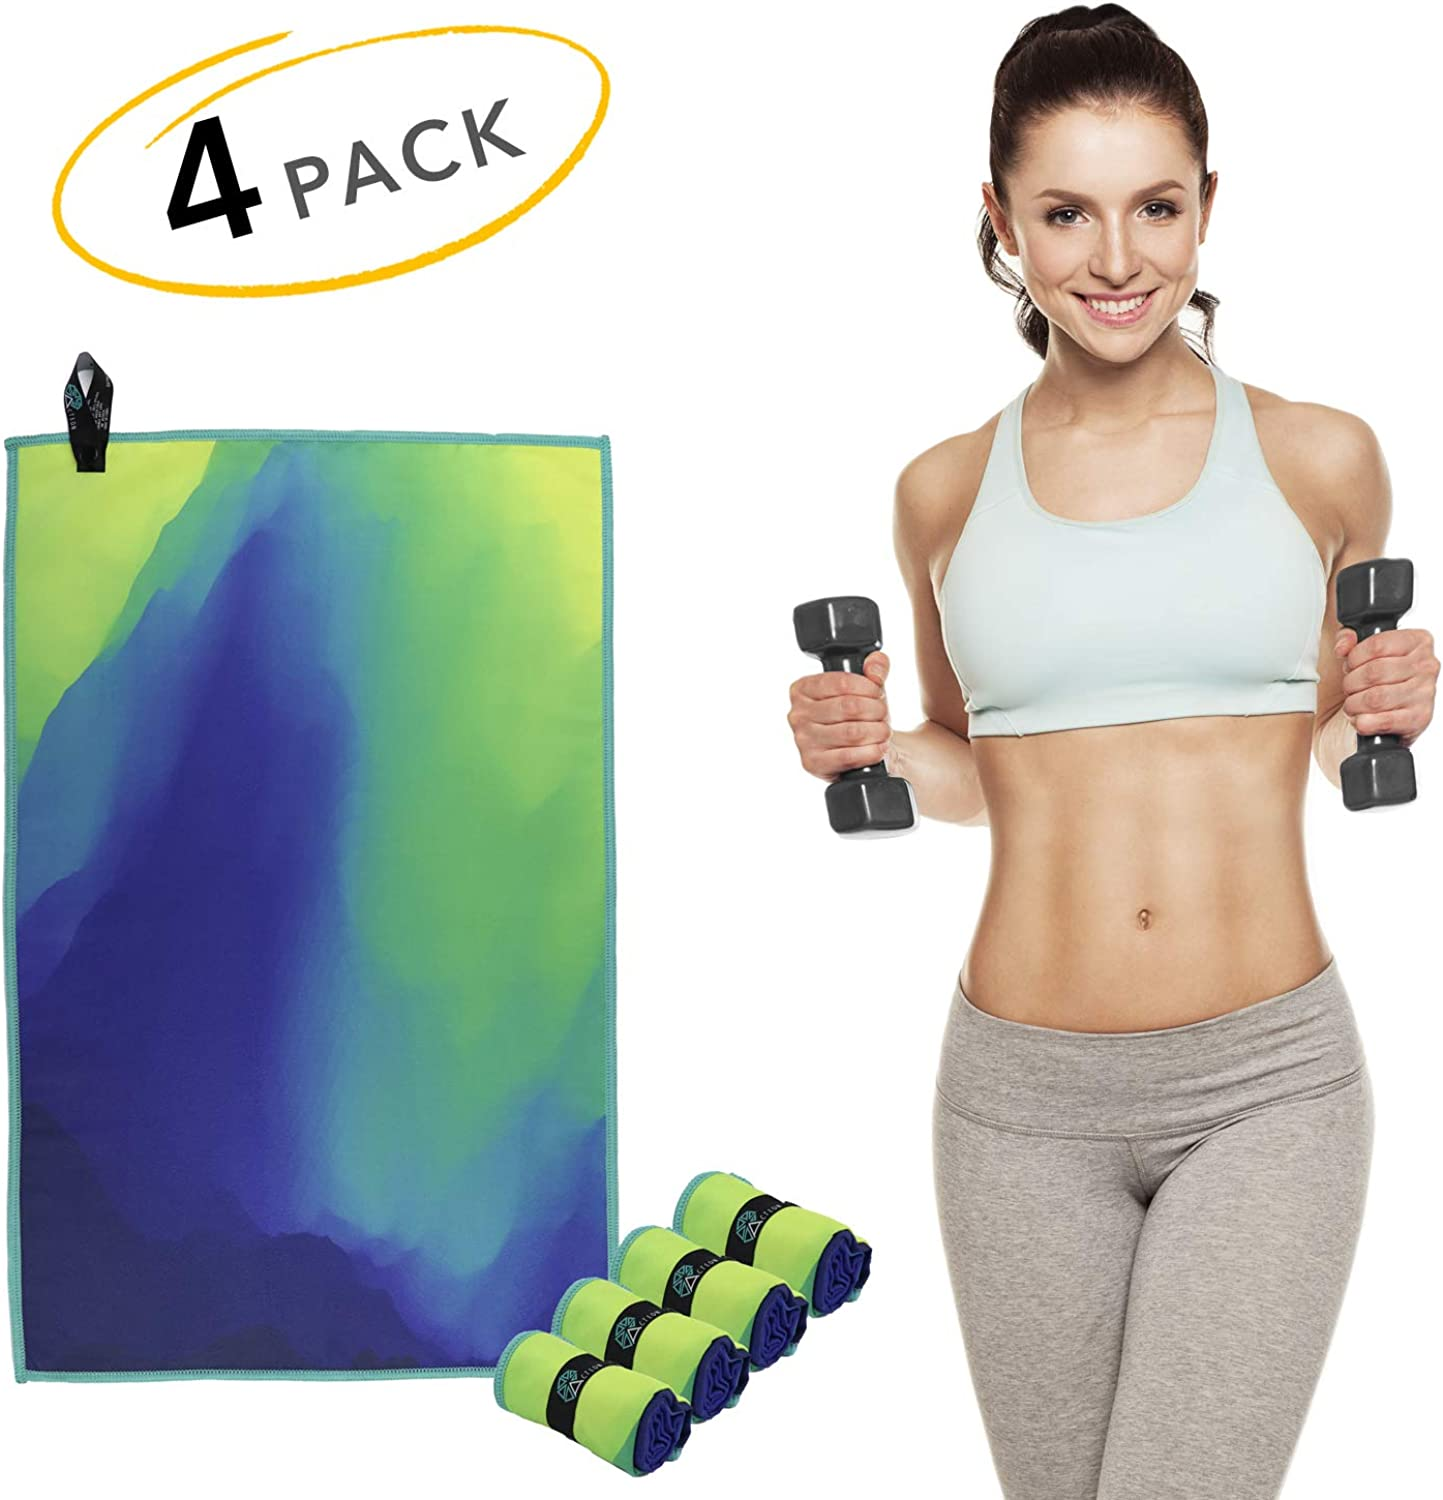 "Acteon Microfiber Gym Towels - Quick Dry Workout Towel - Sweat Towel - Antibacterial - Odor Fighting & Ultra Compact. Great for Travel, Camping, Sports, Backpacking - Men & Women - 15"" x 23"" 4-Pack"